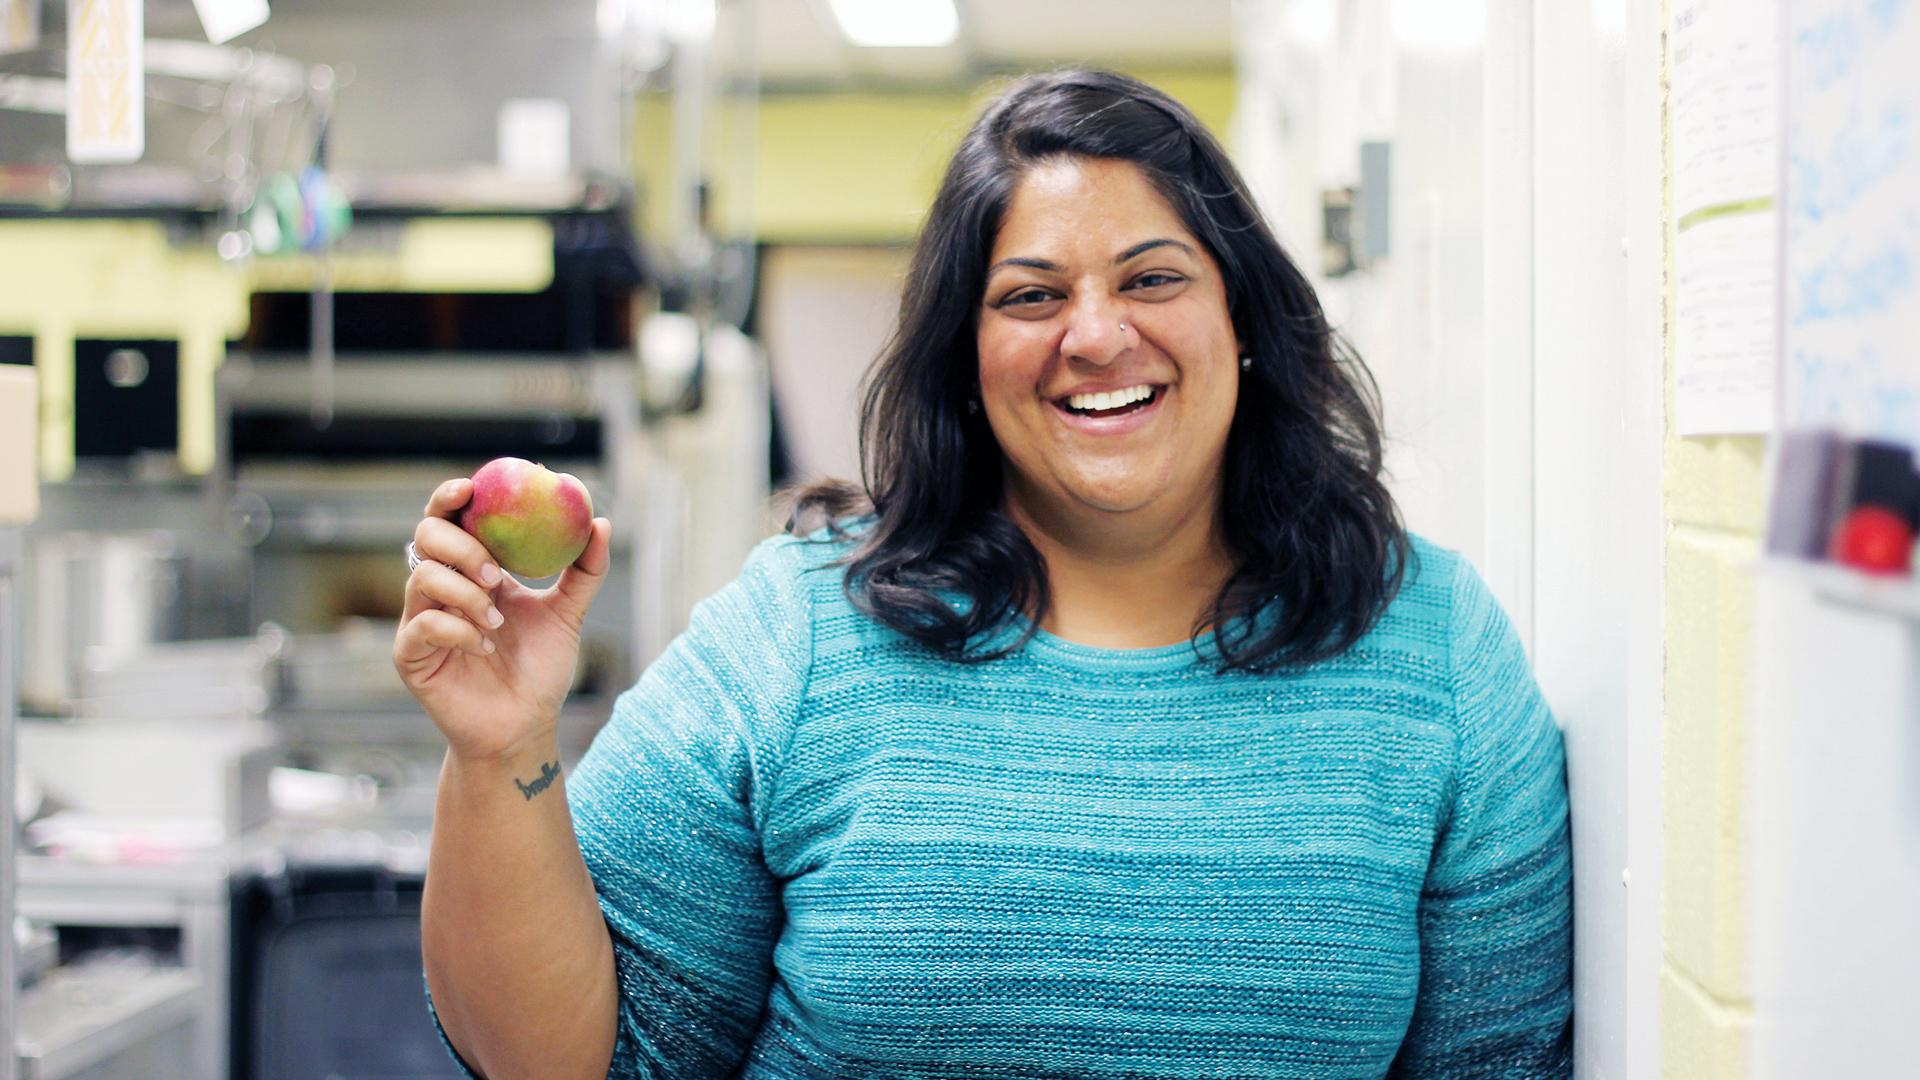 The impact of COVID-19 on our eating habits | Food activist and chef Joshna Maharaj